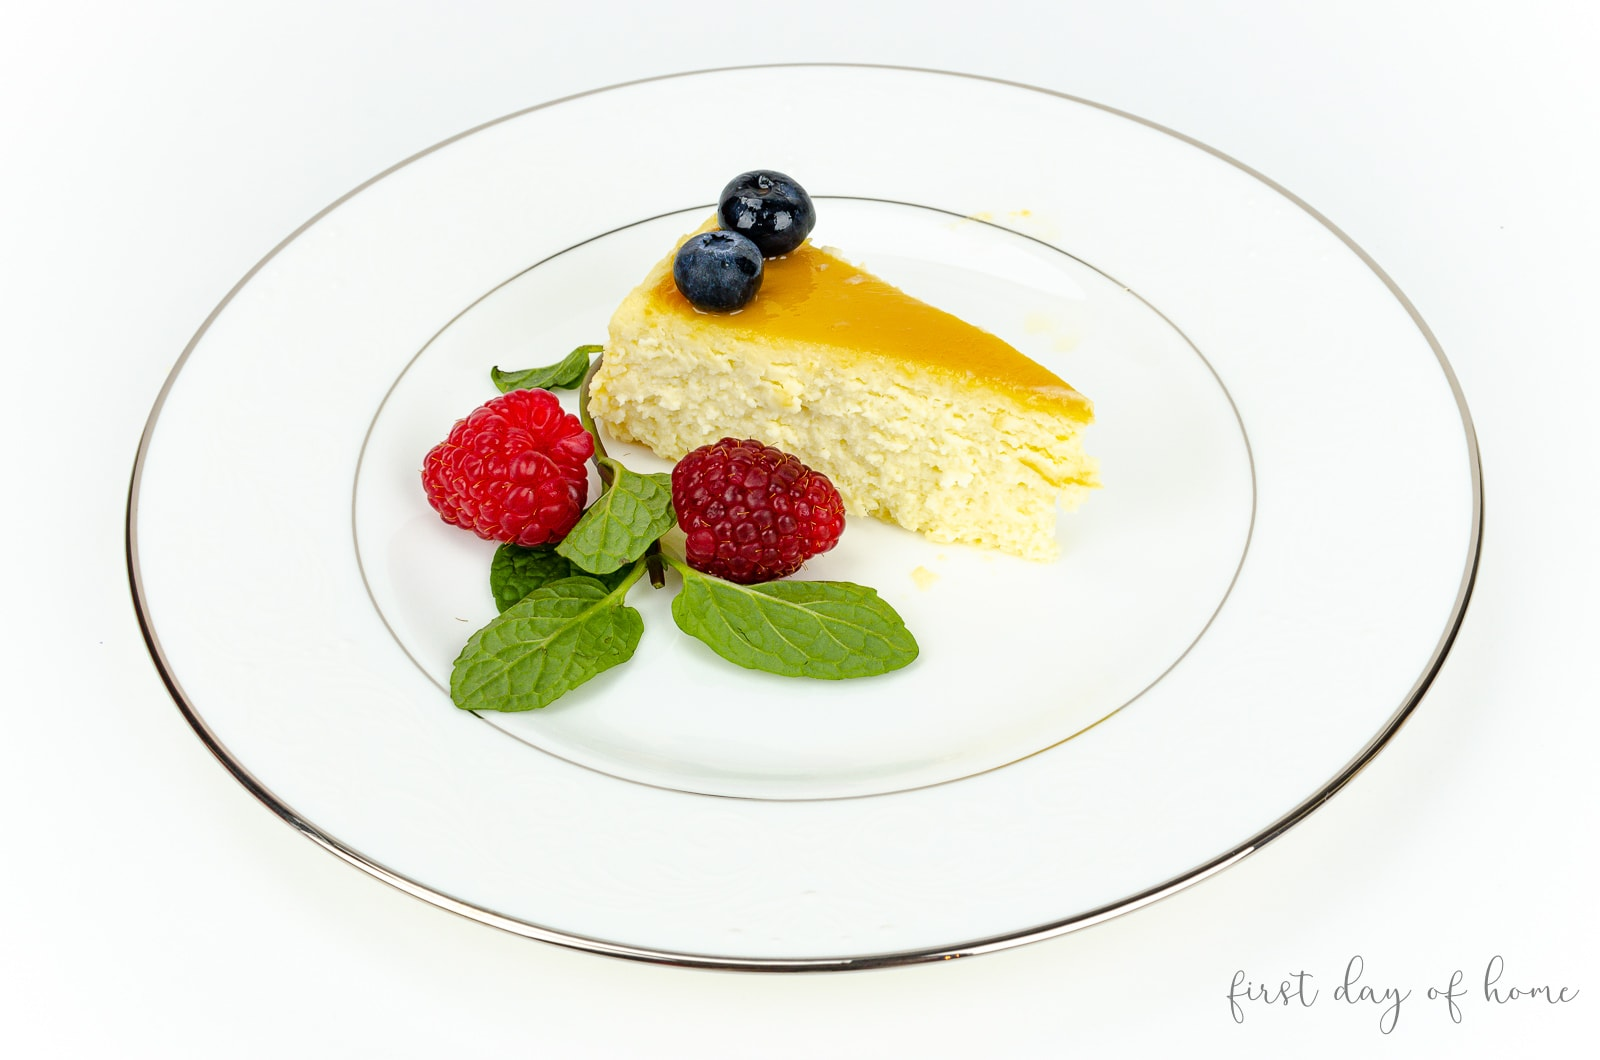 Flan de queso slice with mint leaves, raspberries and blueberries